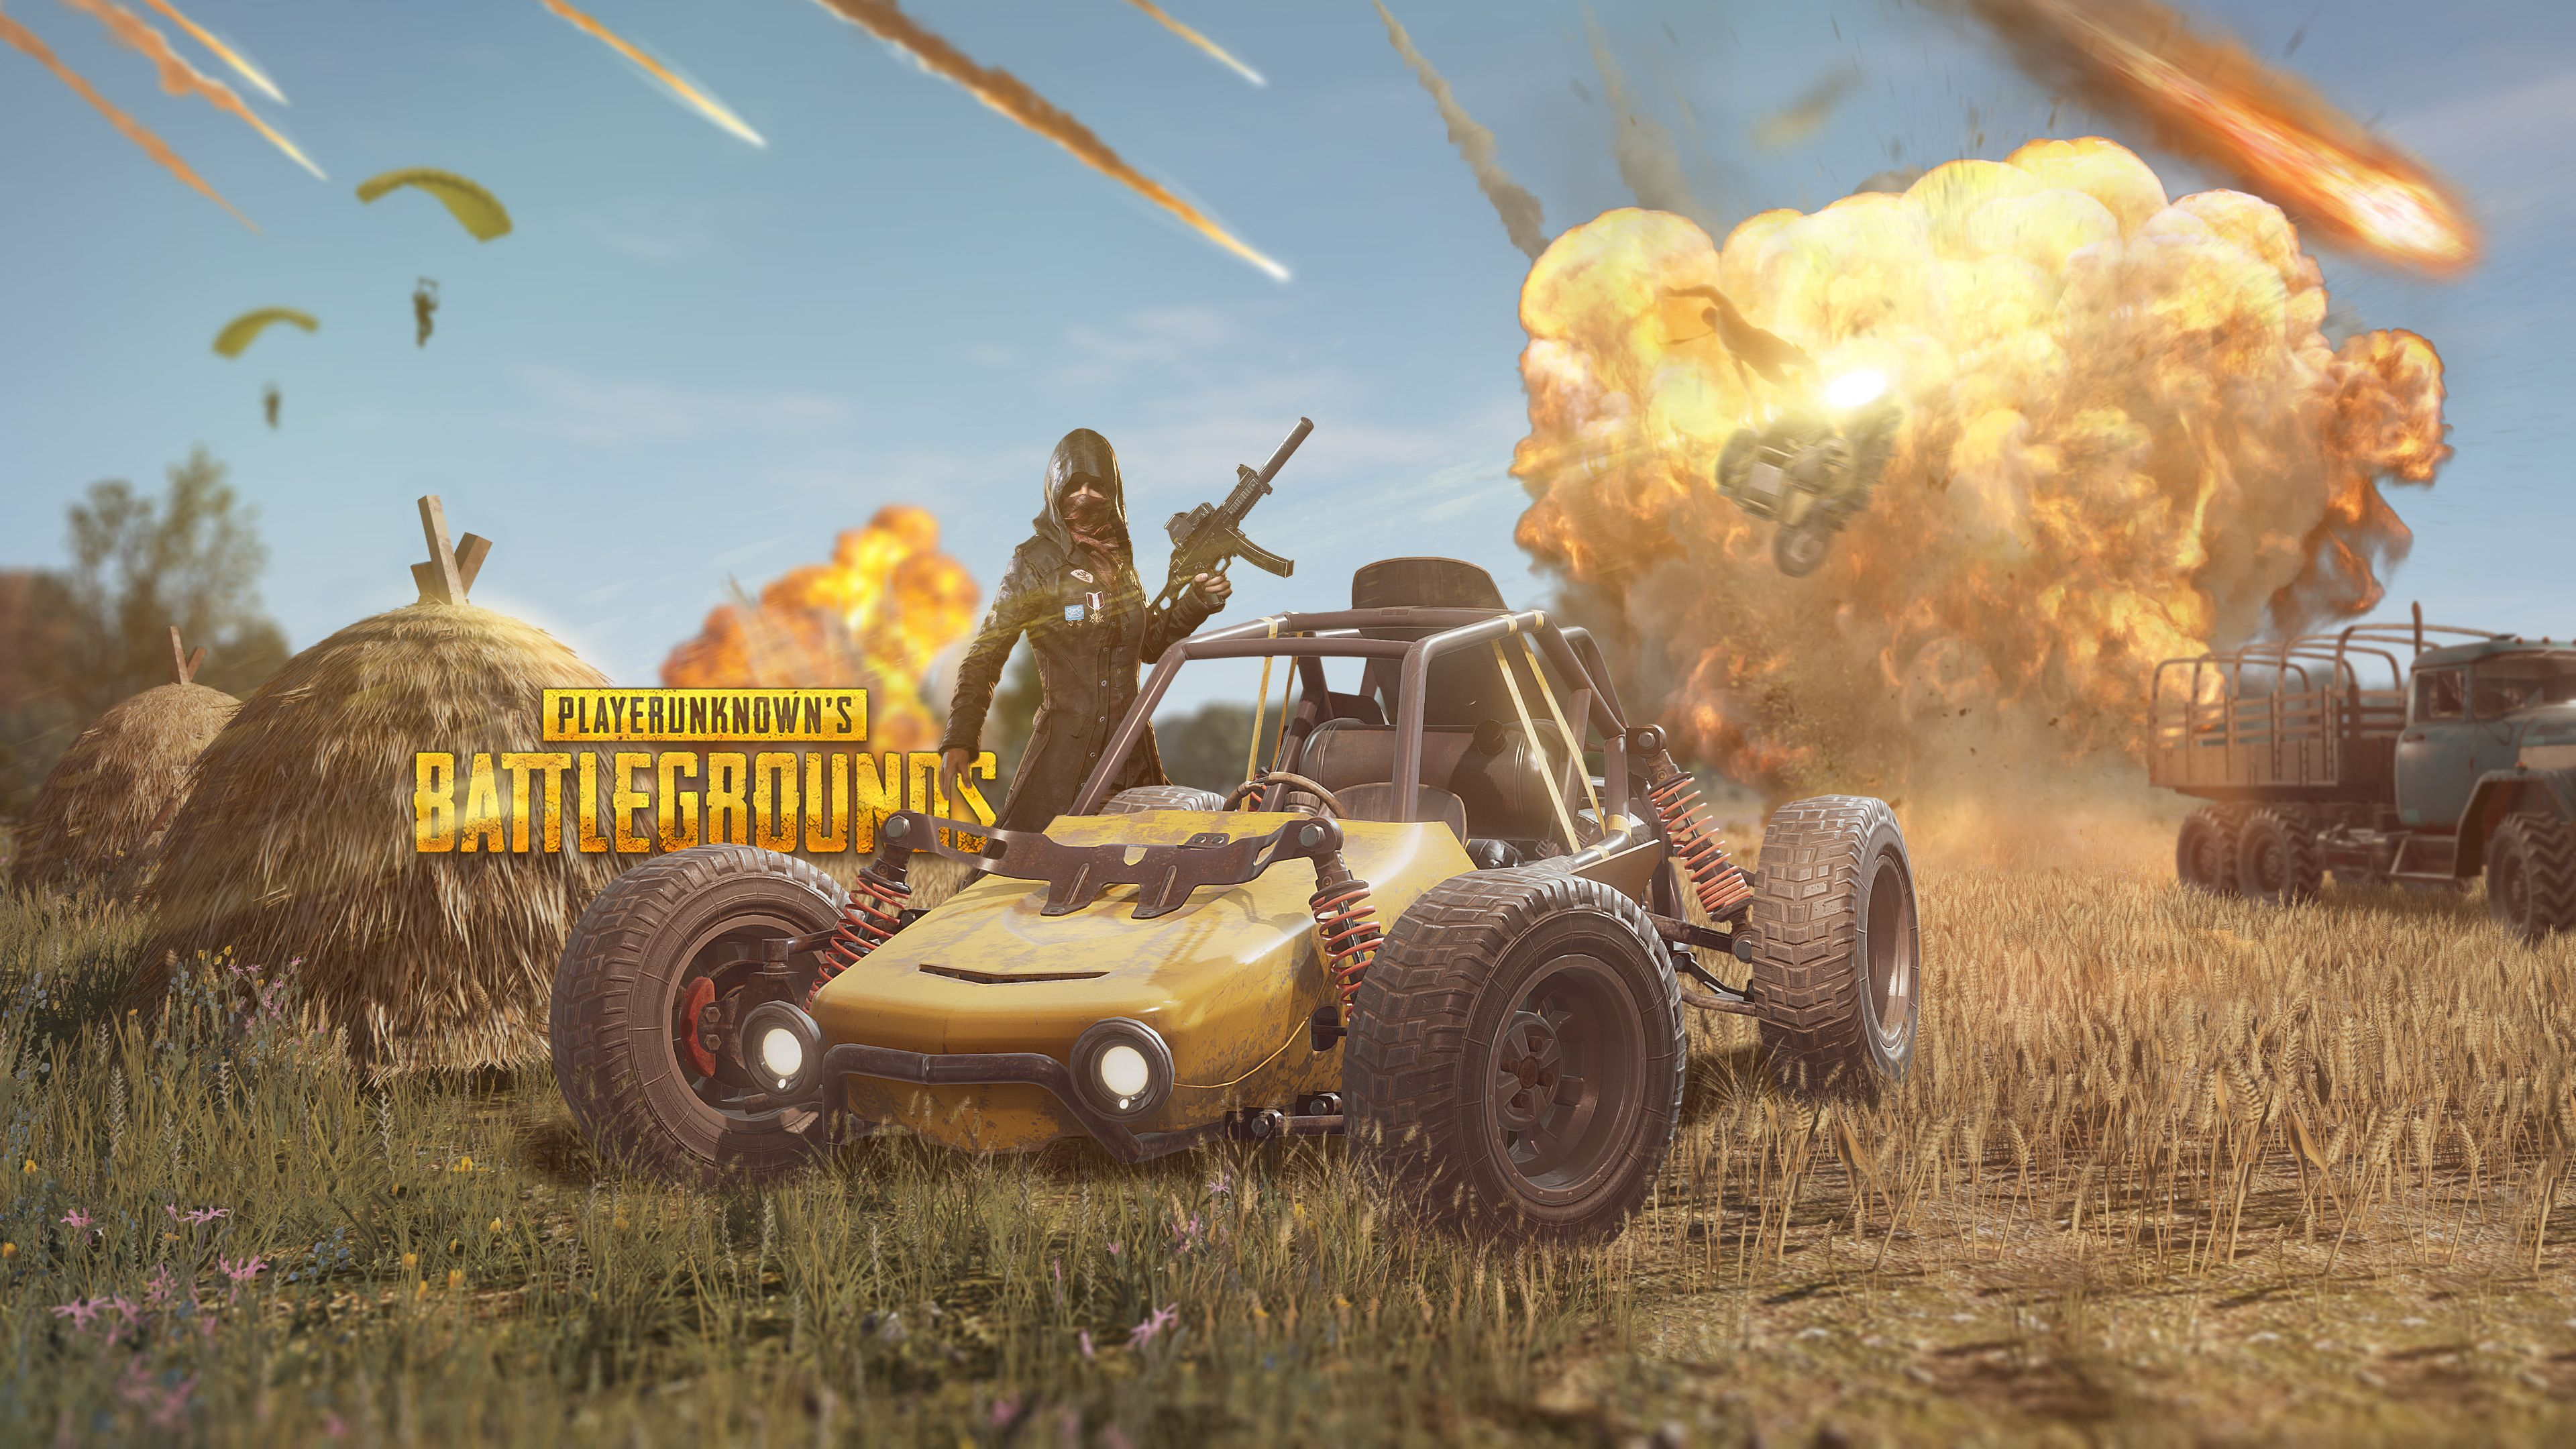 Wallpaper Of Pubg Mobile: Pubg Wallpapers Widescreen On Wallpaper 1080p HD